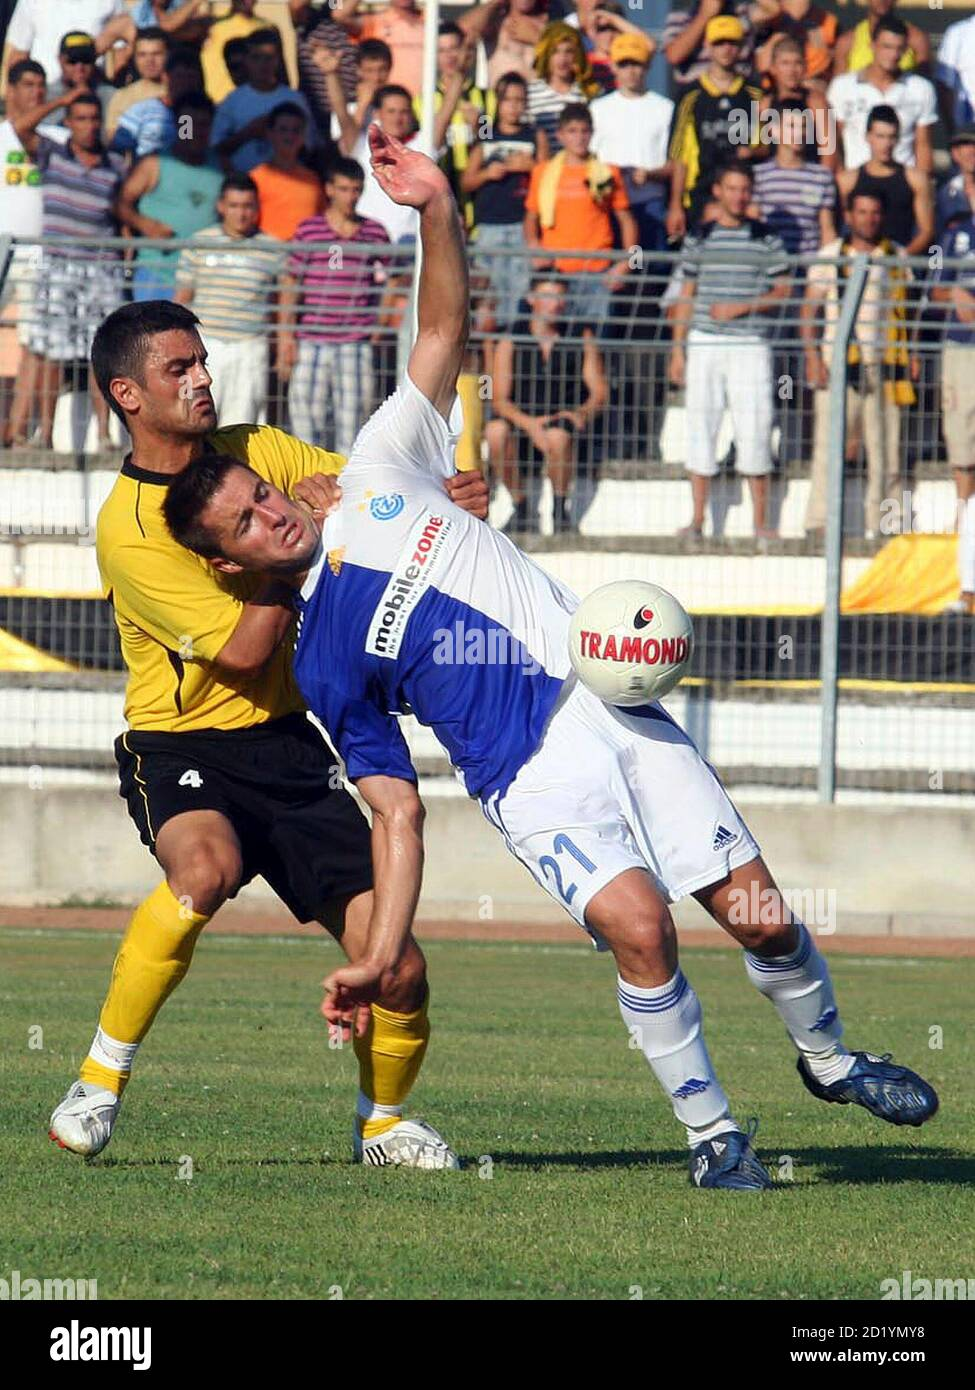 Altin Lilaj (L) of Albania's Besa fights for the ball with Samel Sabanovic of Switzerland's Grasshoppers during their second round, second-leg Intertoto Cup soccer match at Niko Dovana stadium in Durres, about 40 km (25 miles) from the capital Tirana, July 12, 2008. REUTERS/Arben Celi (ALBANIA) Stock Photo